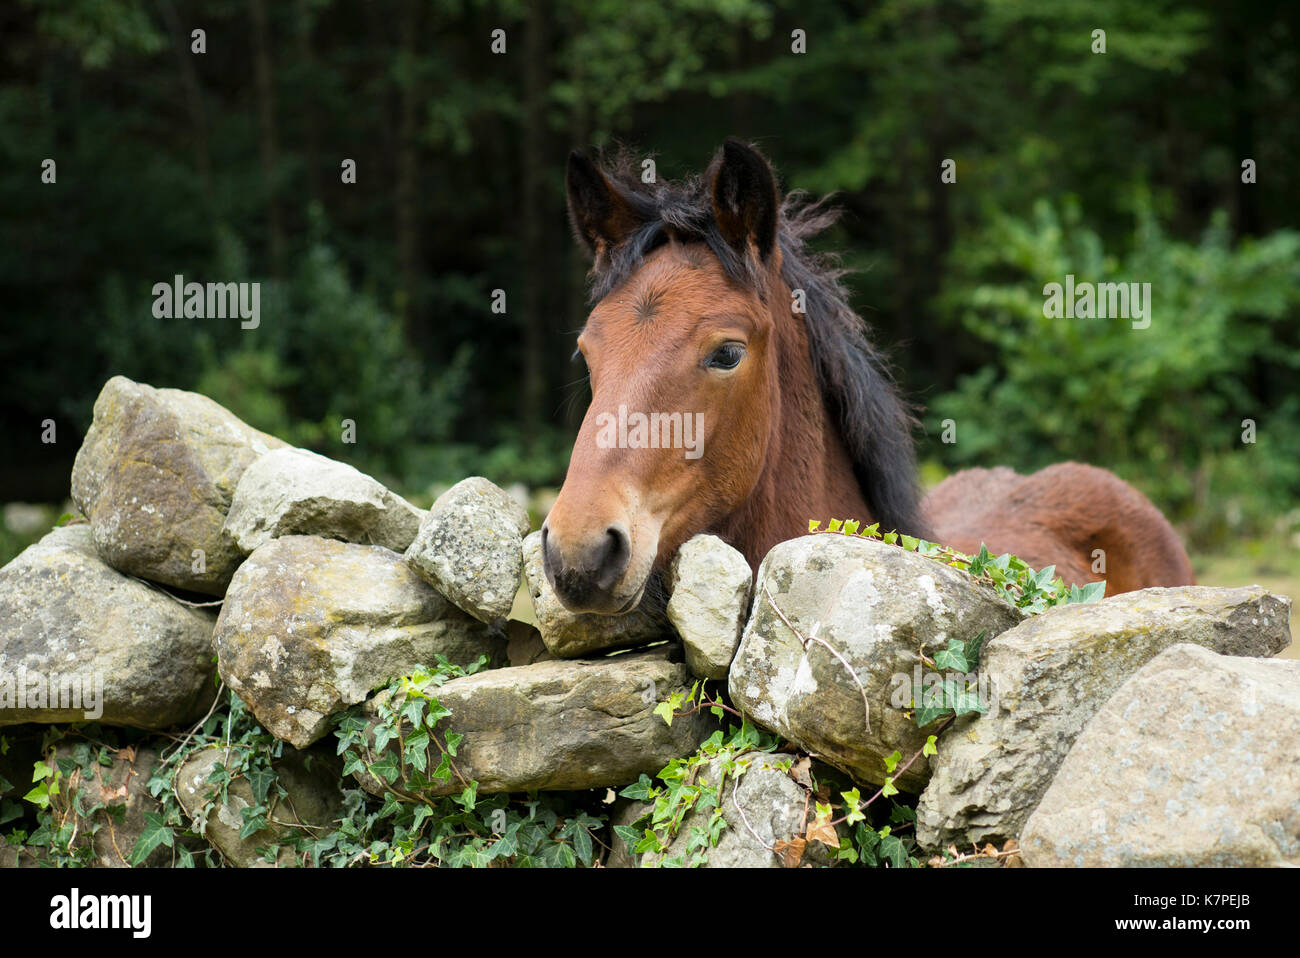 Bay horse in field looking over dry stone wall in Cantabria region of Spain - Stock Image